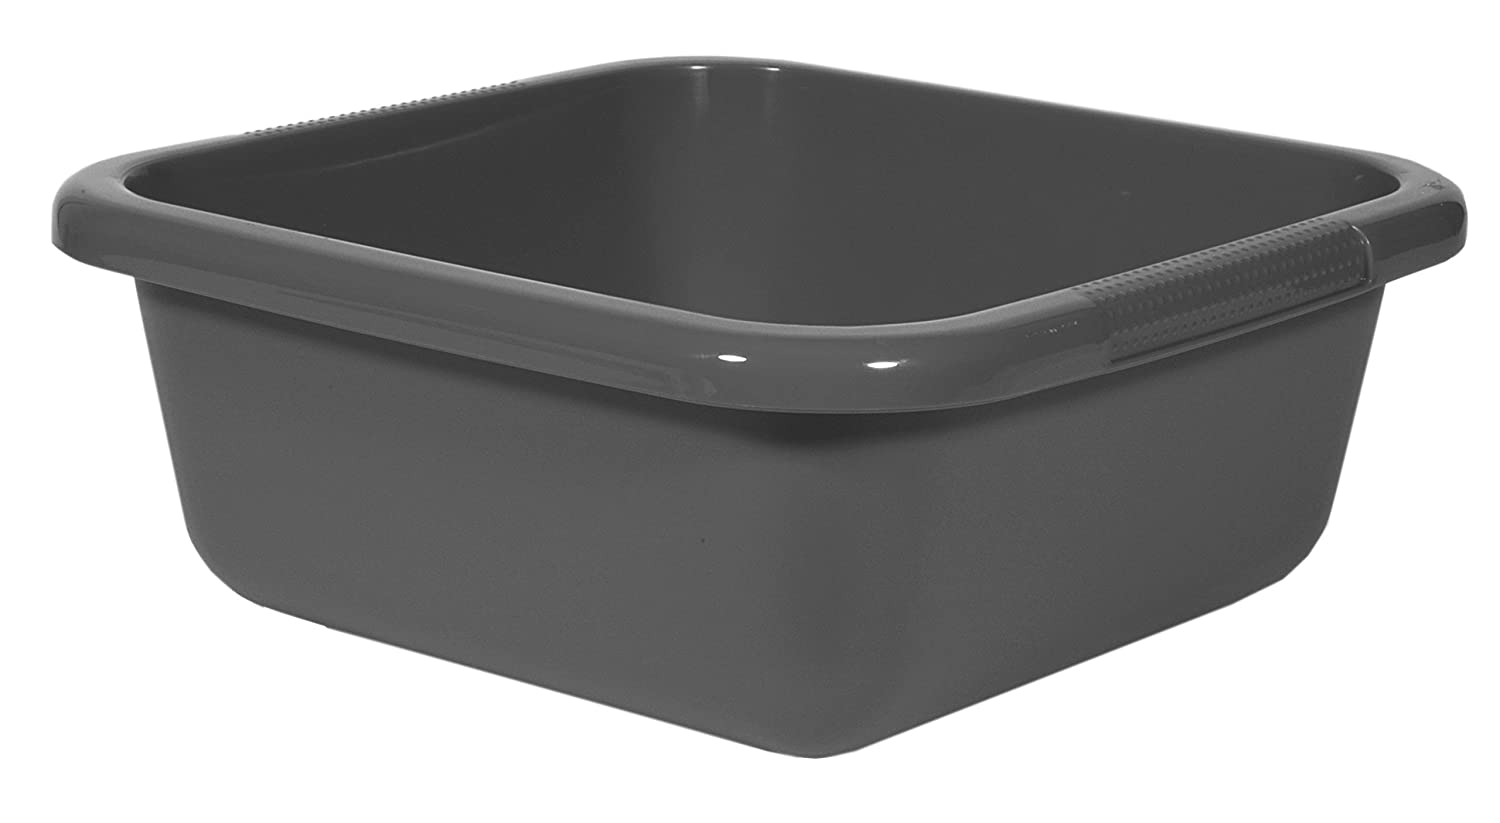 Curver Rectangular Bowl, Anthracite, 15 Litre 01833-308-00